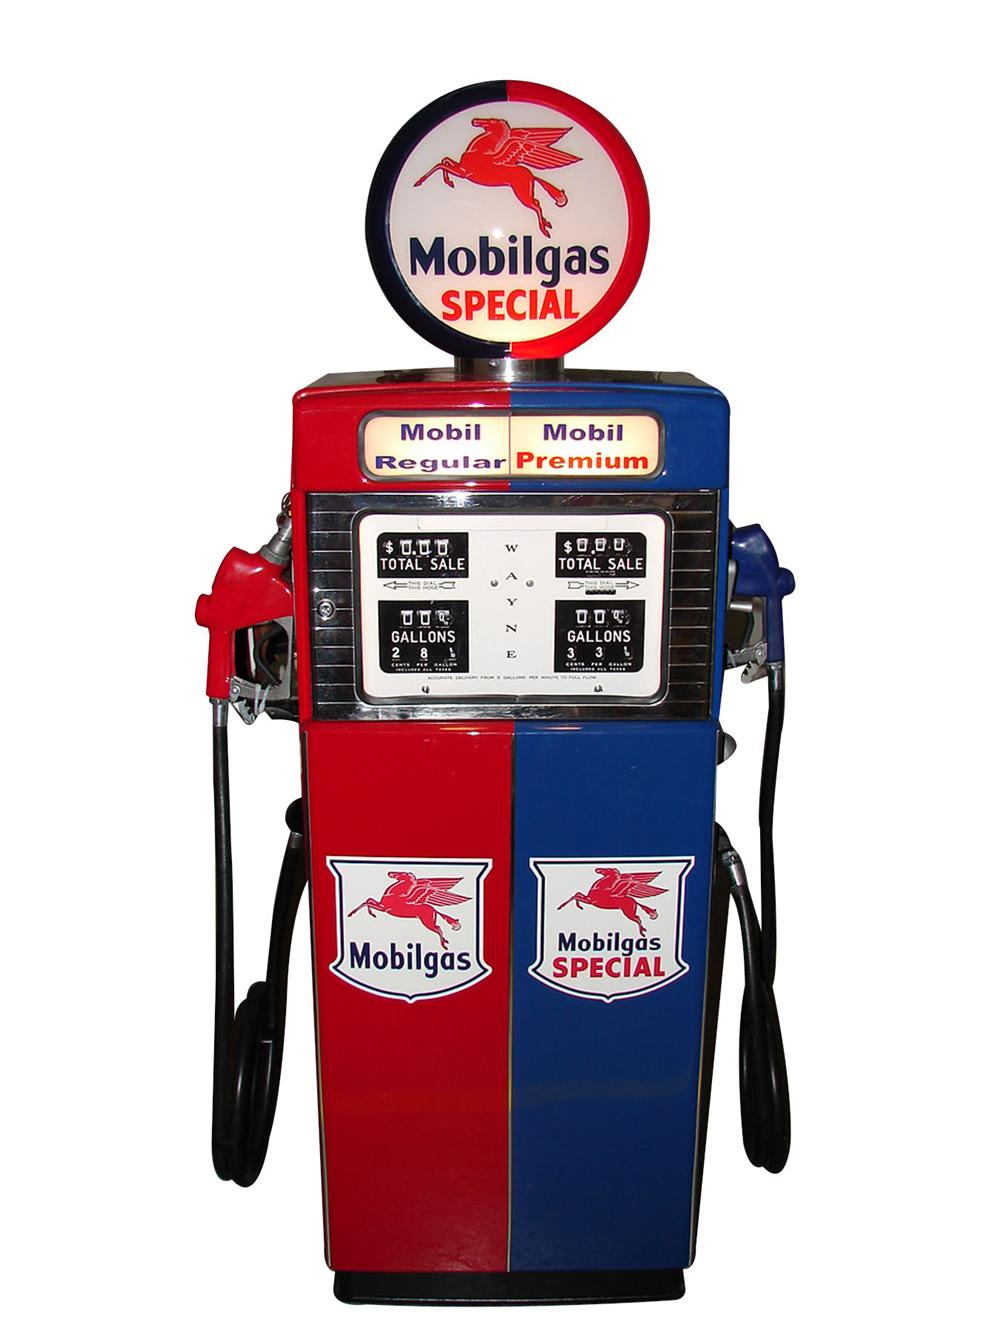 Phenomenal and rare late 50s-60s Wayne 505 Mobilgas dual product pump. - Front 3/4 - 89237